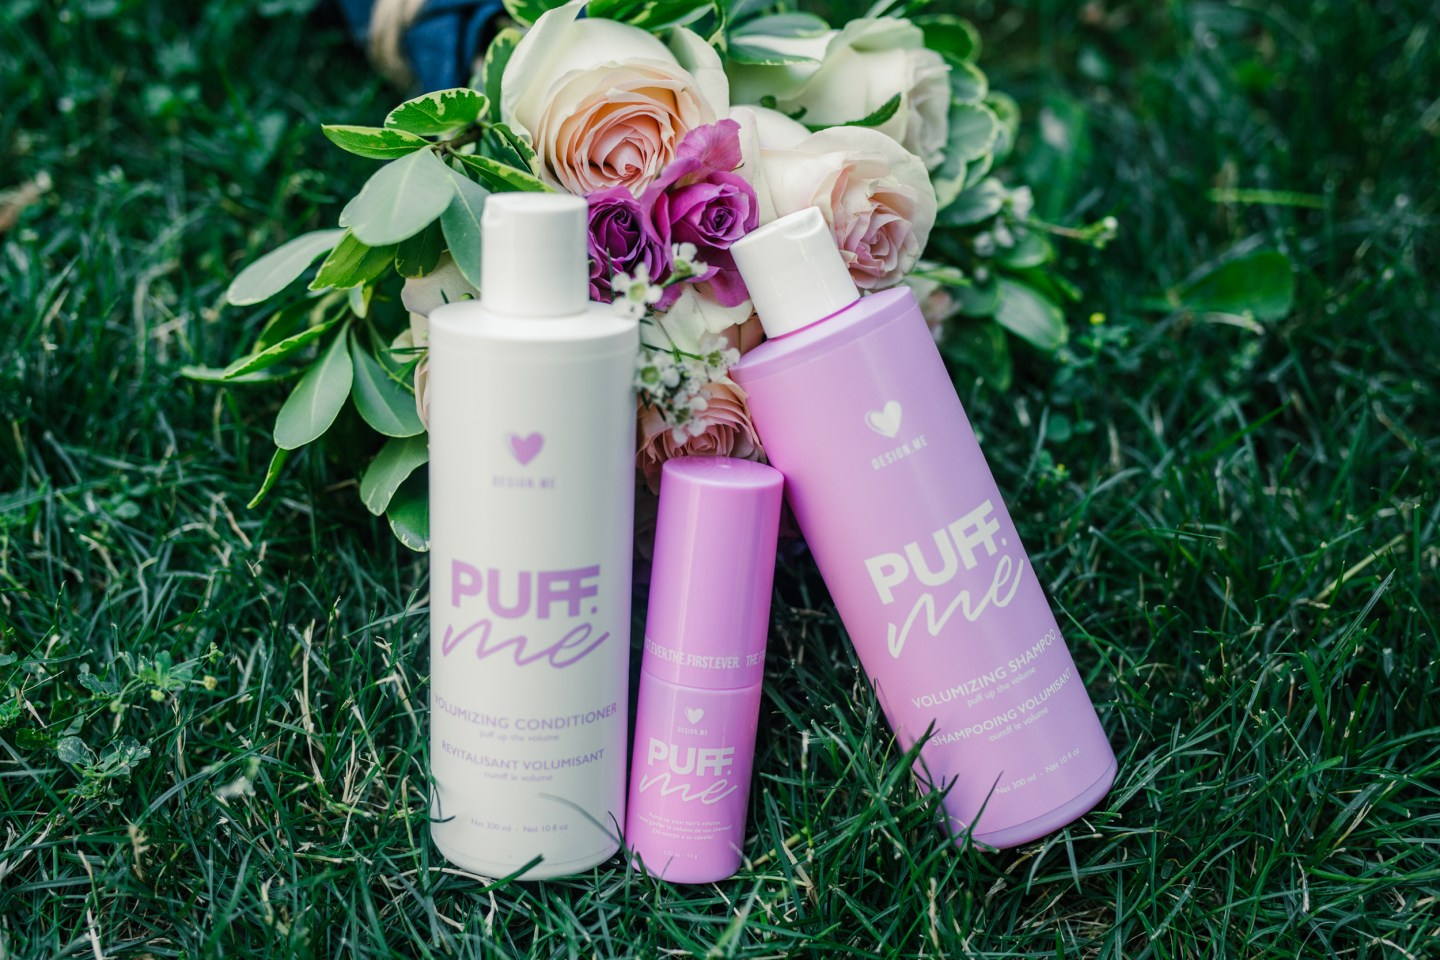 Review: Design.ME's Puff.ME Shampoo, Conditioner and Volumizing Powder  Spray